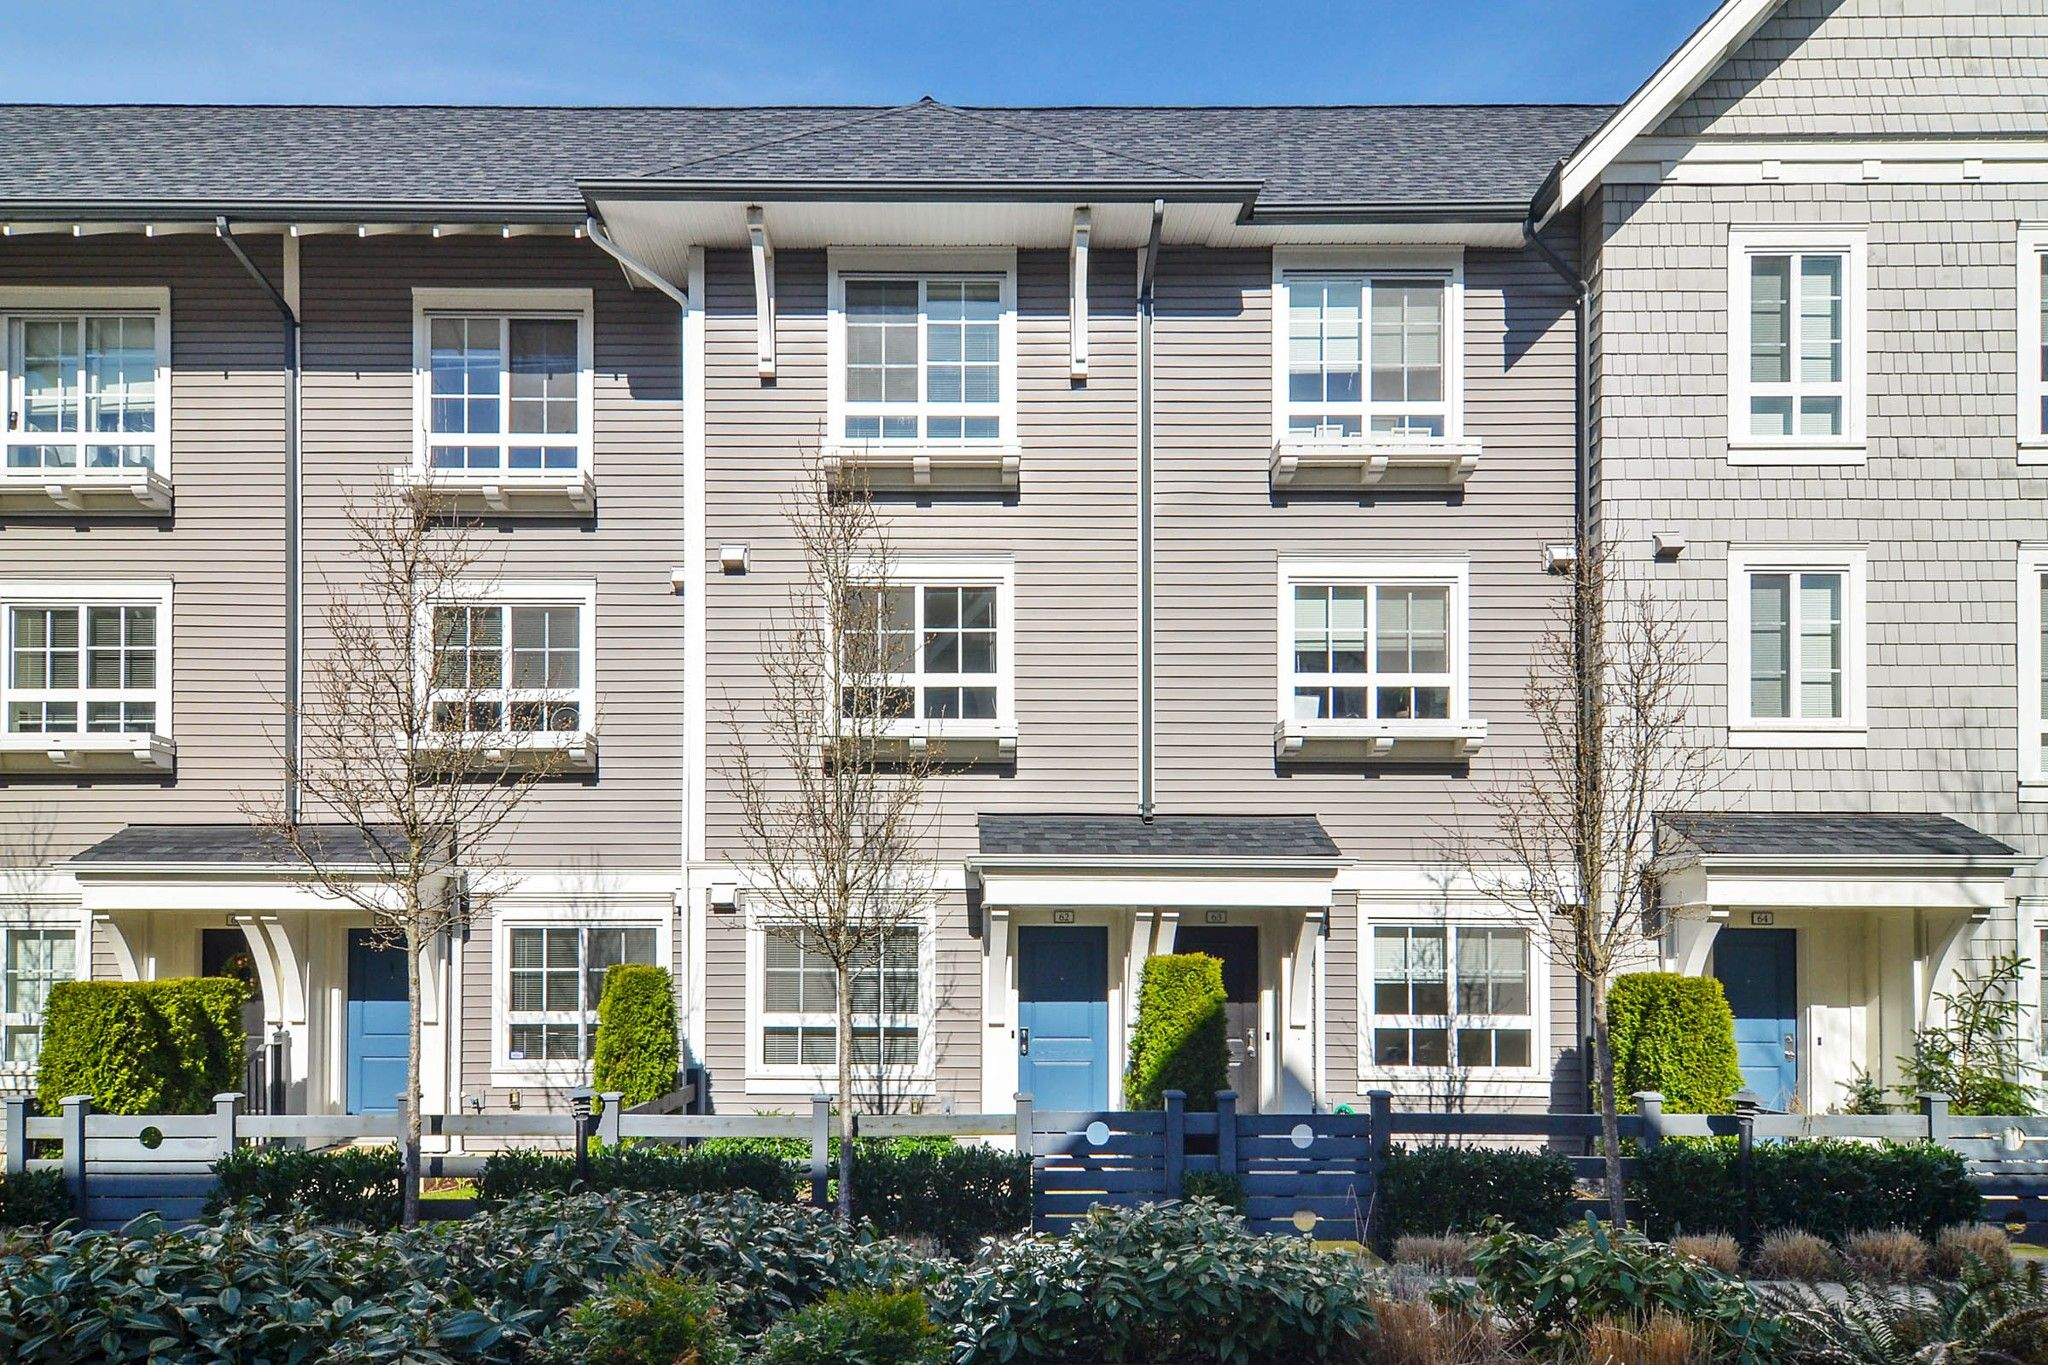 """Main Photo: 62 8476 207A Street in Langley: Willoughby Heights Townhouse for sale in """"YORK BY MOSAIC"""" : MLS®# R2548750"""